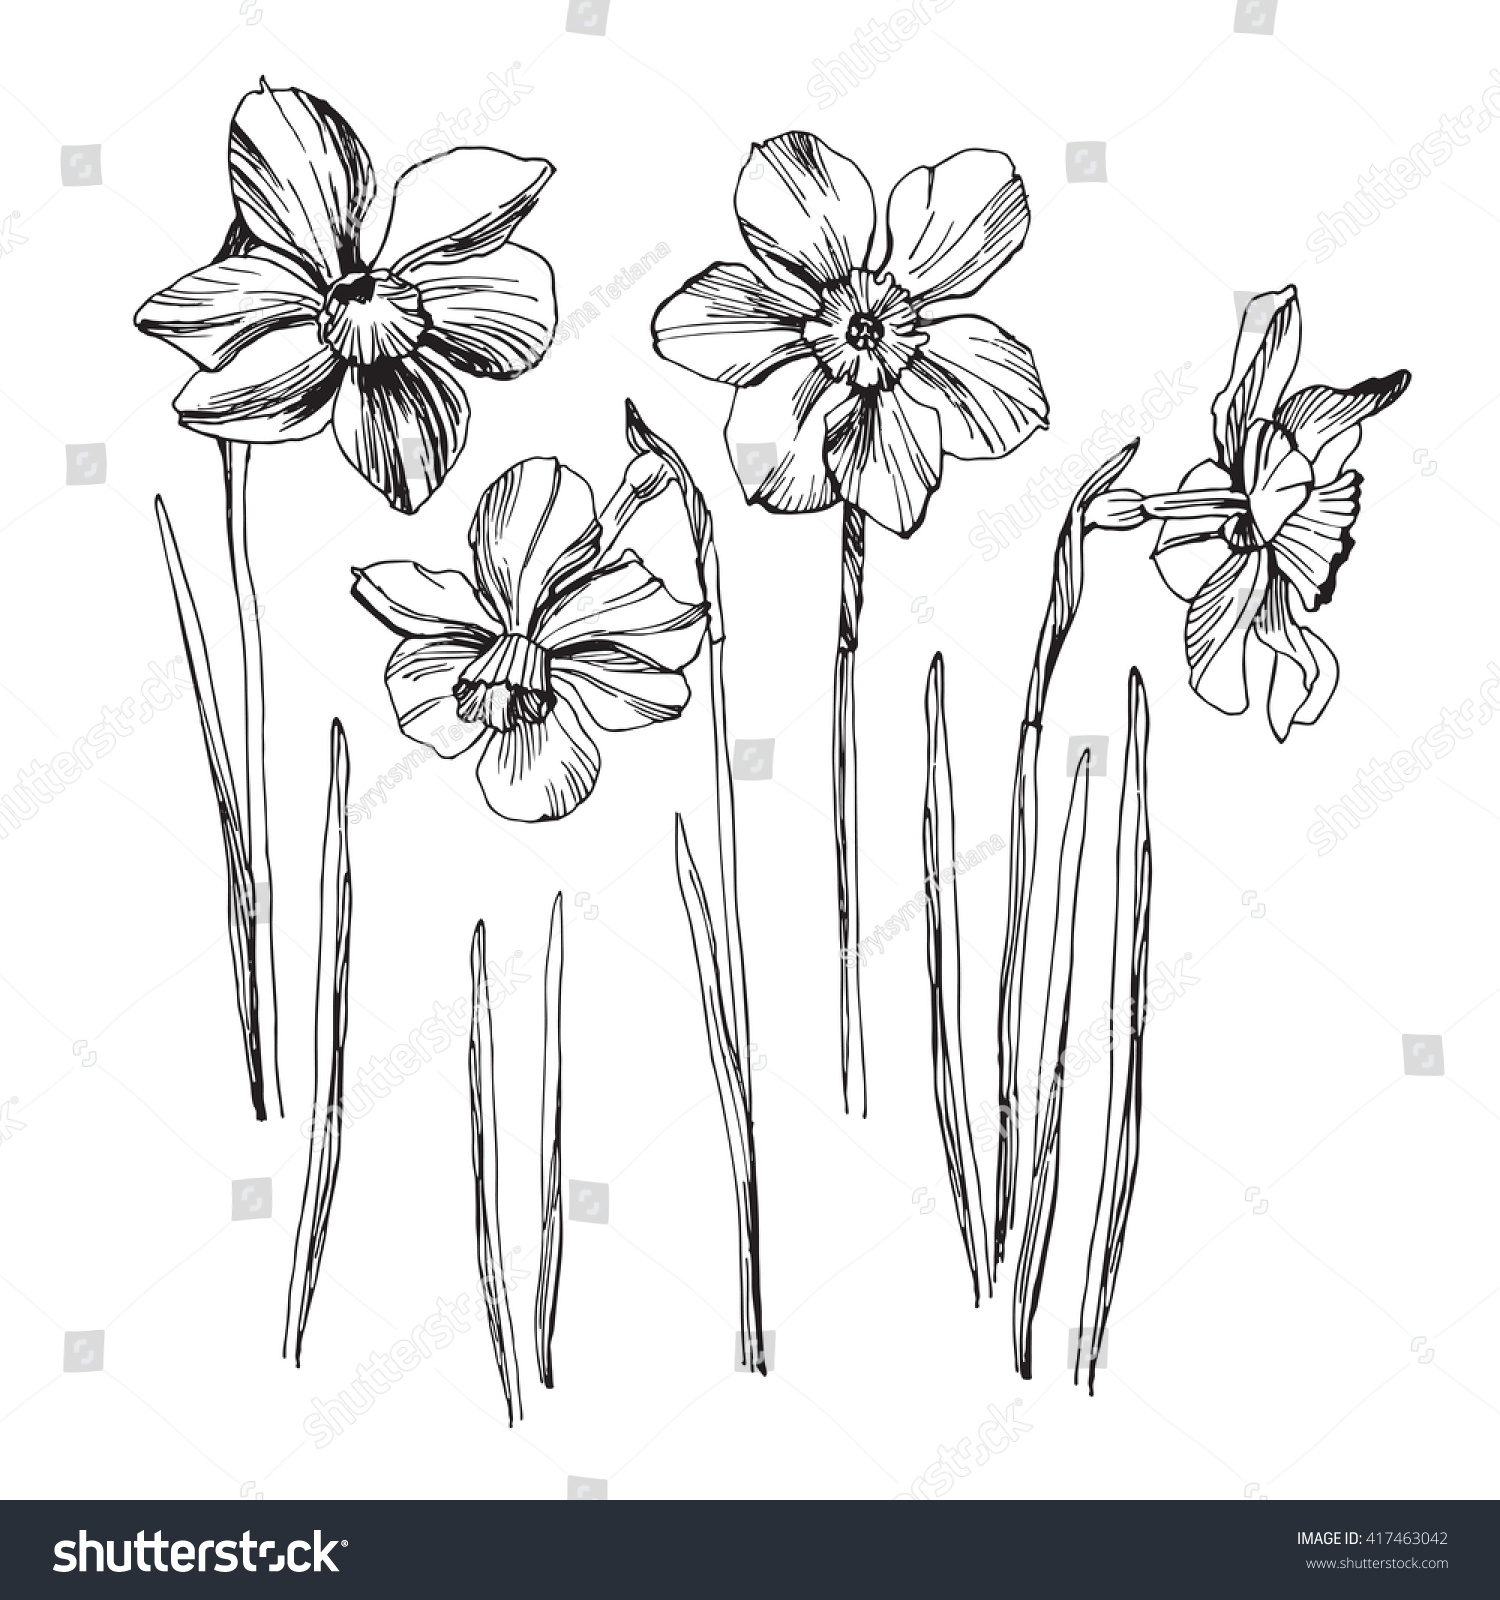 Daffodil Drawing Set Isolated On White Stock Vector (2018) 417463042 ...